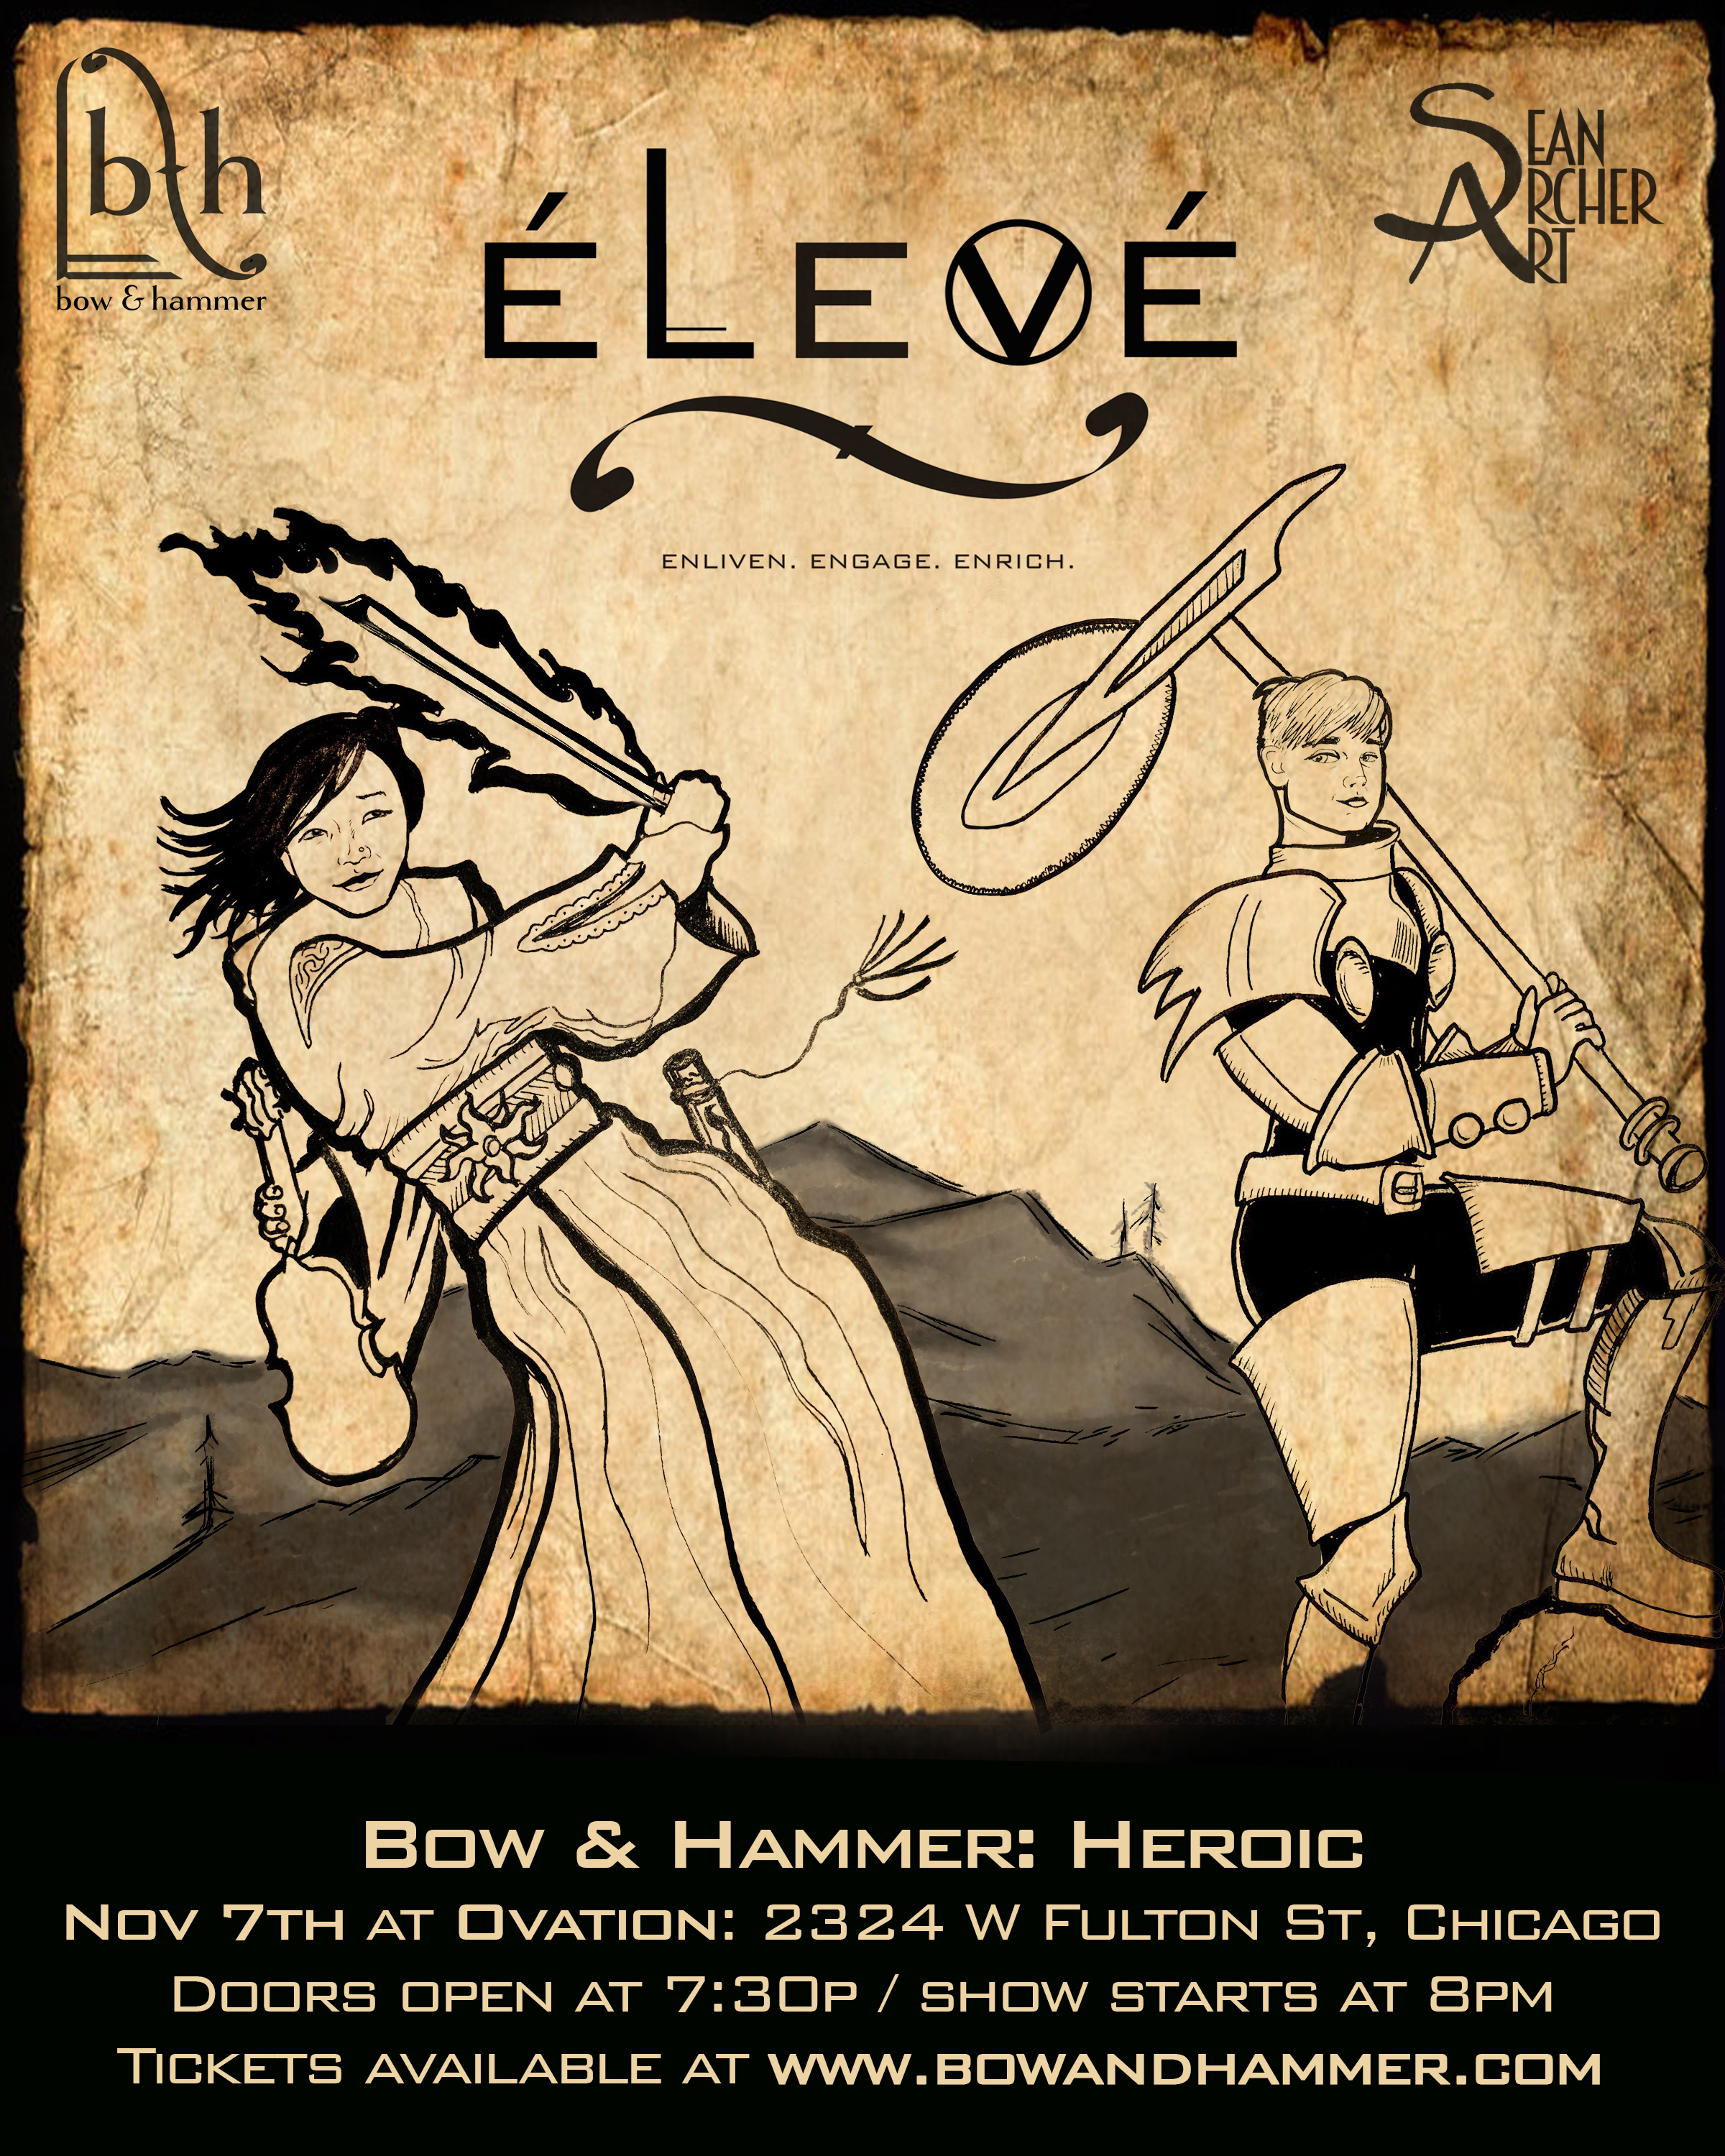 See the full program, details and more at http://www.bowandhammer.com/comingup/levnov14